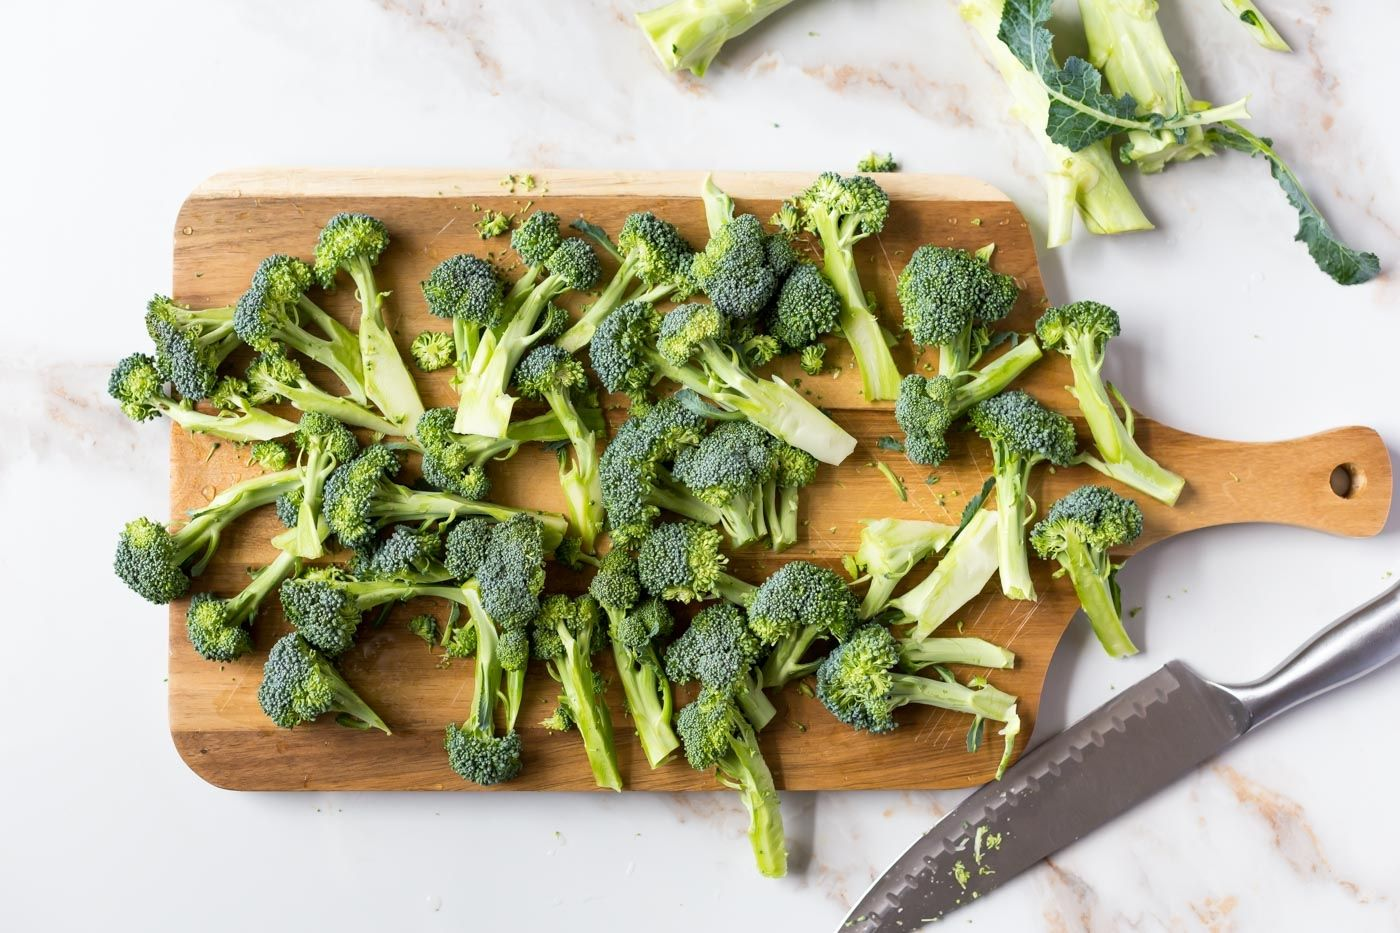 broccoli florets chopped up on cutting board